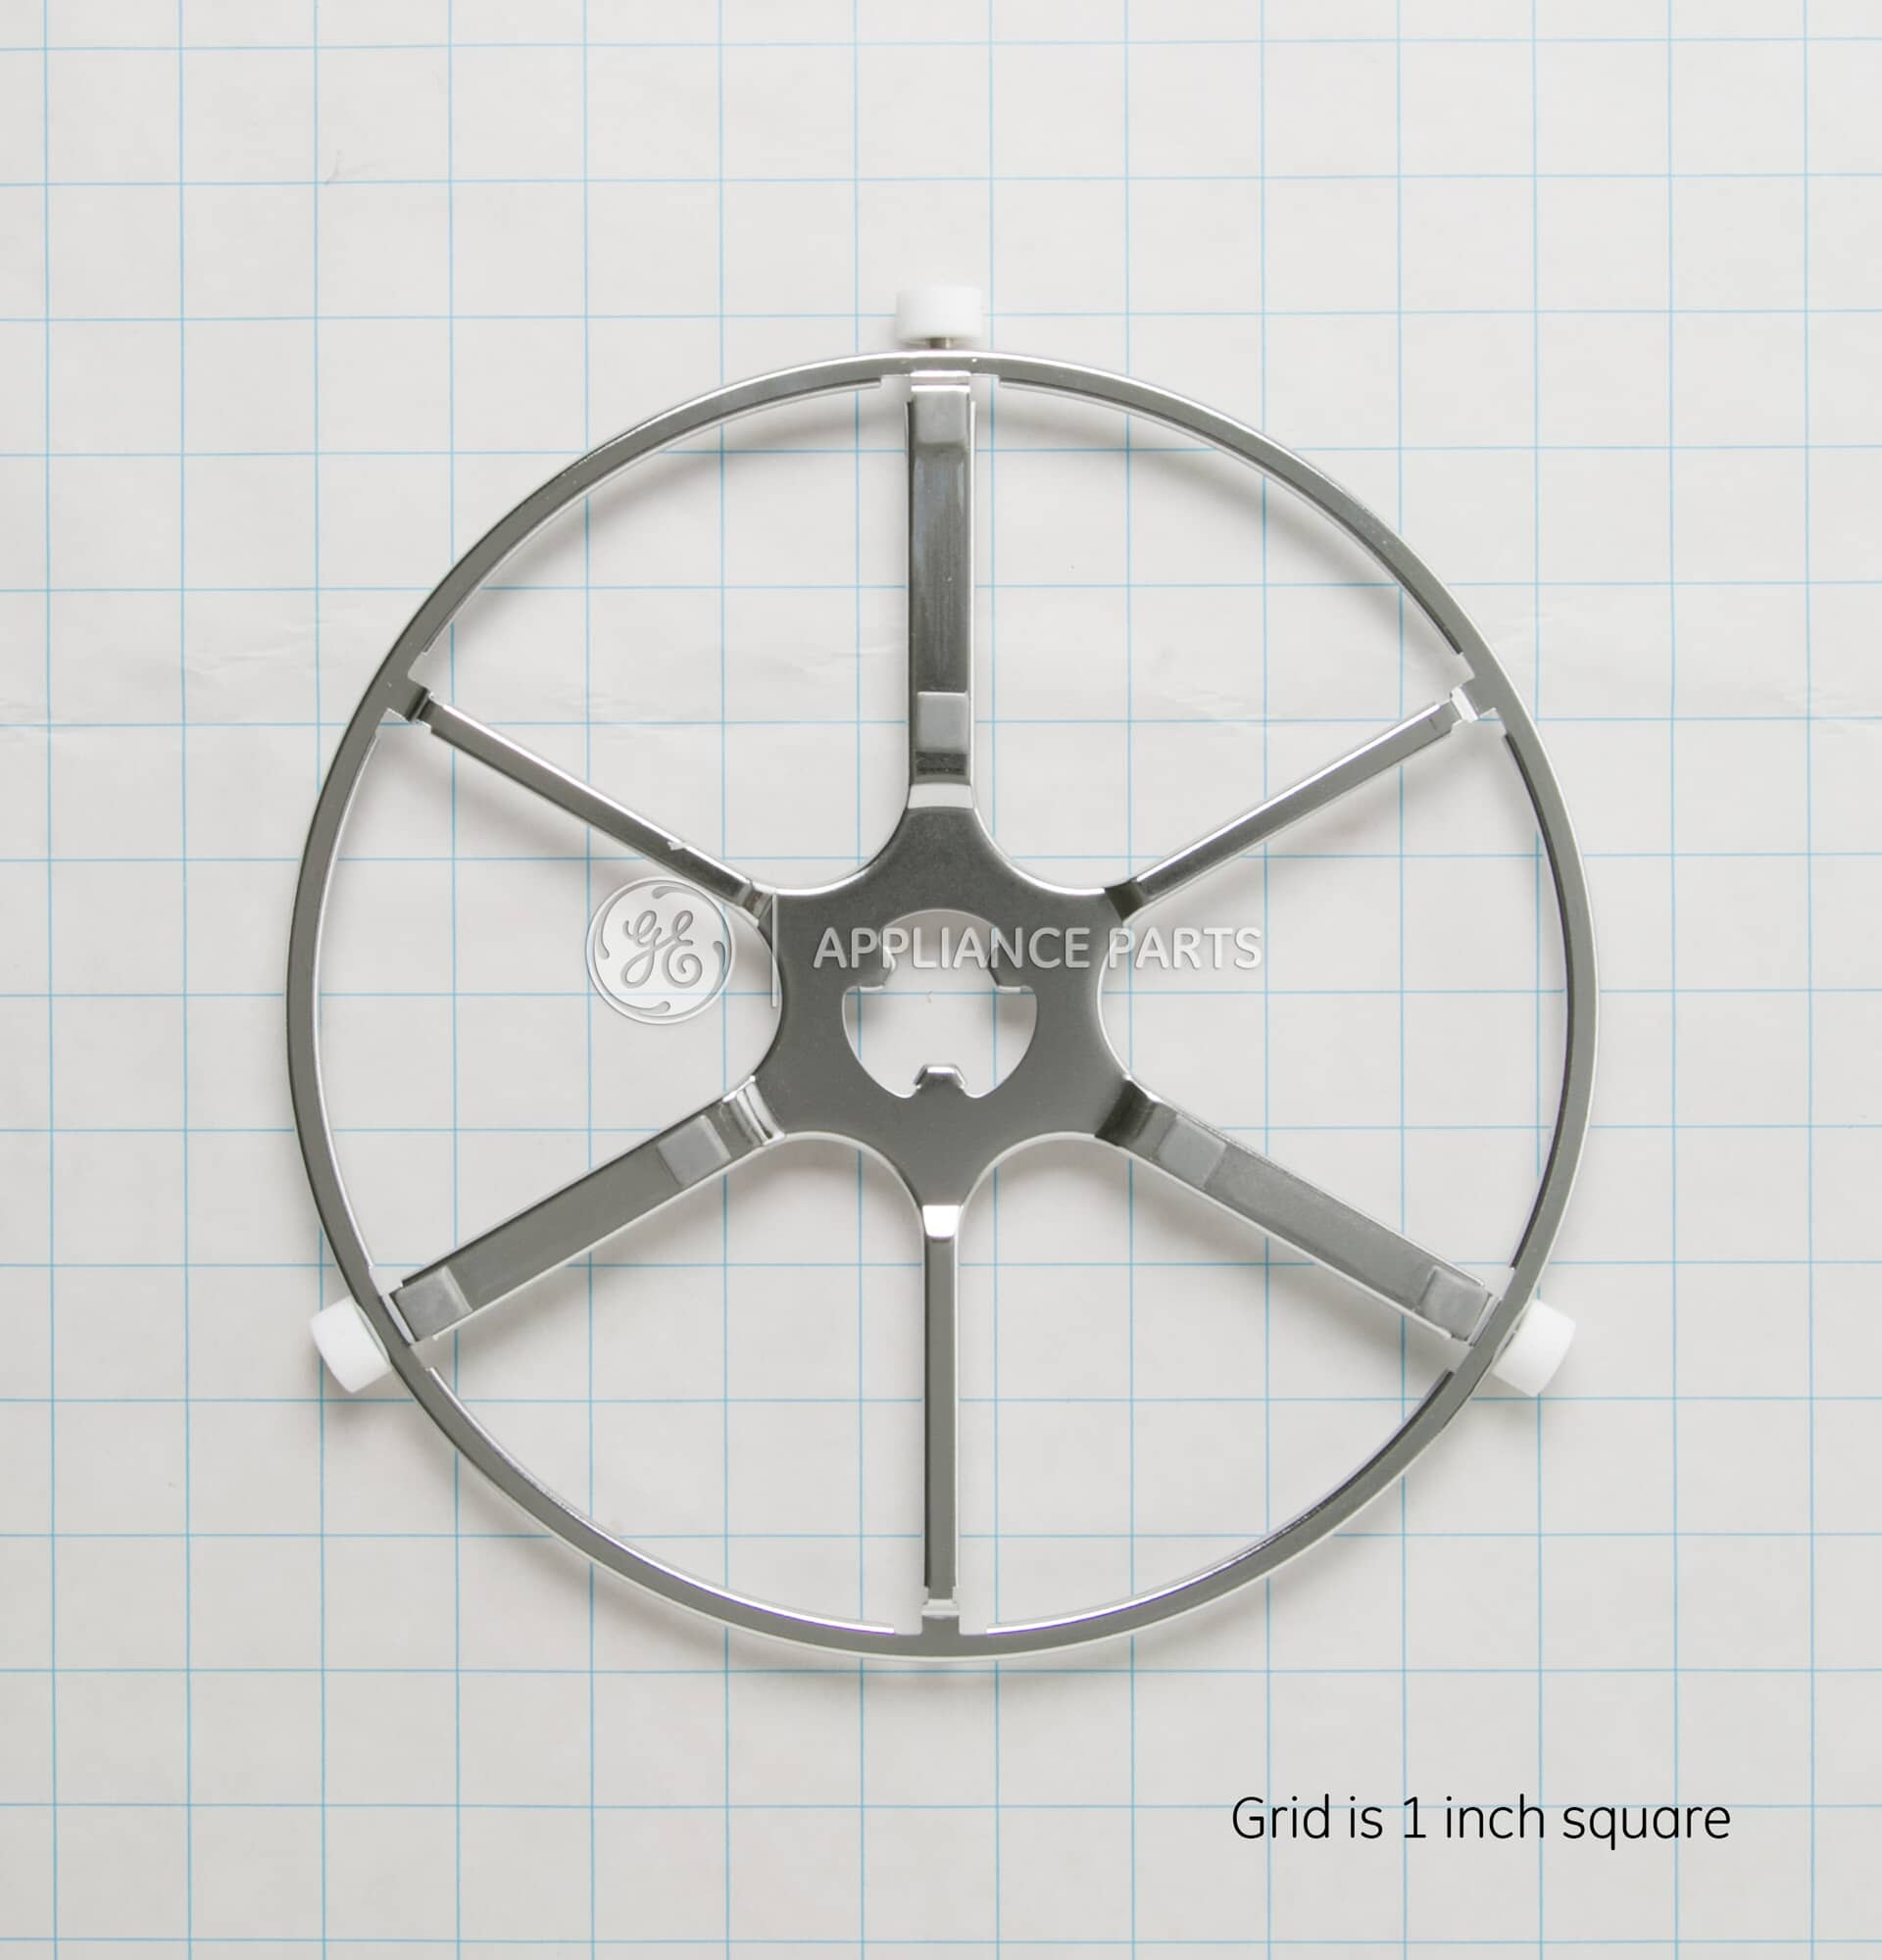 GE ApplianceWB06X10667ROTATING RING ASSEMBLY